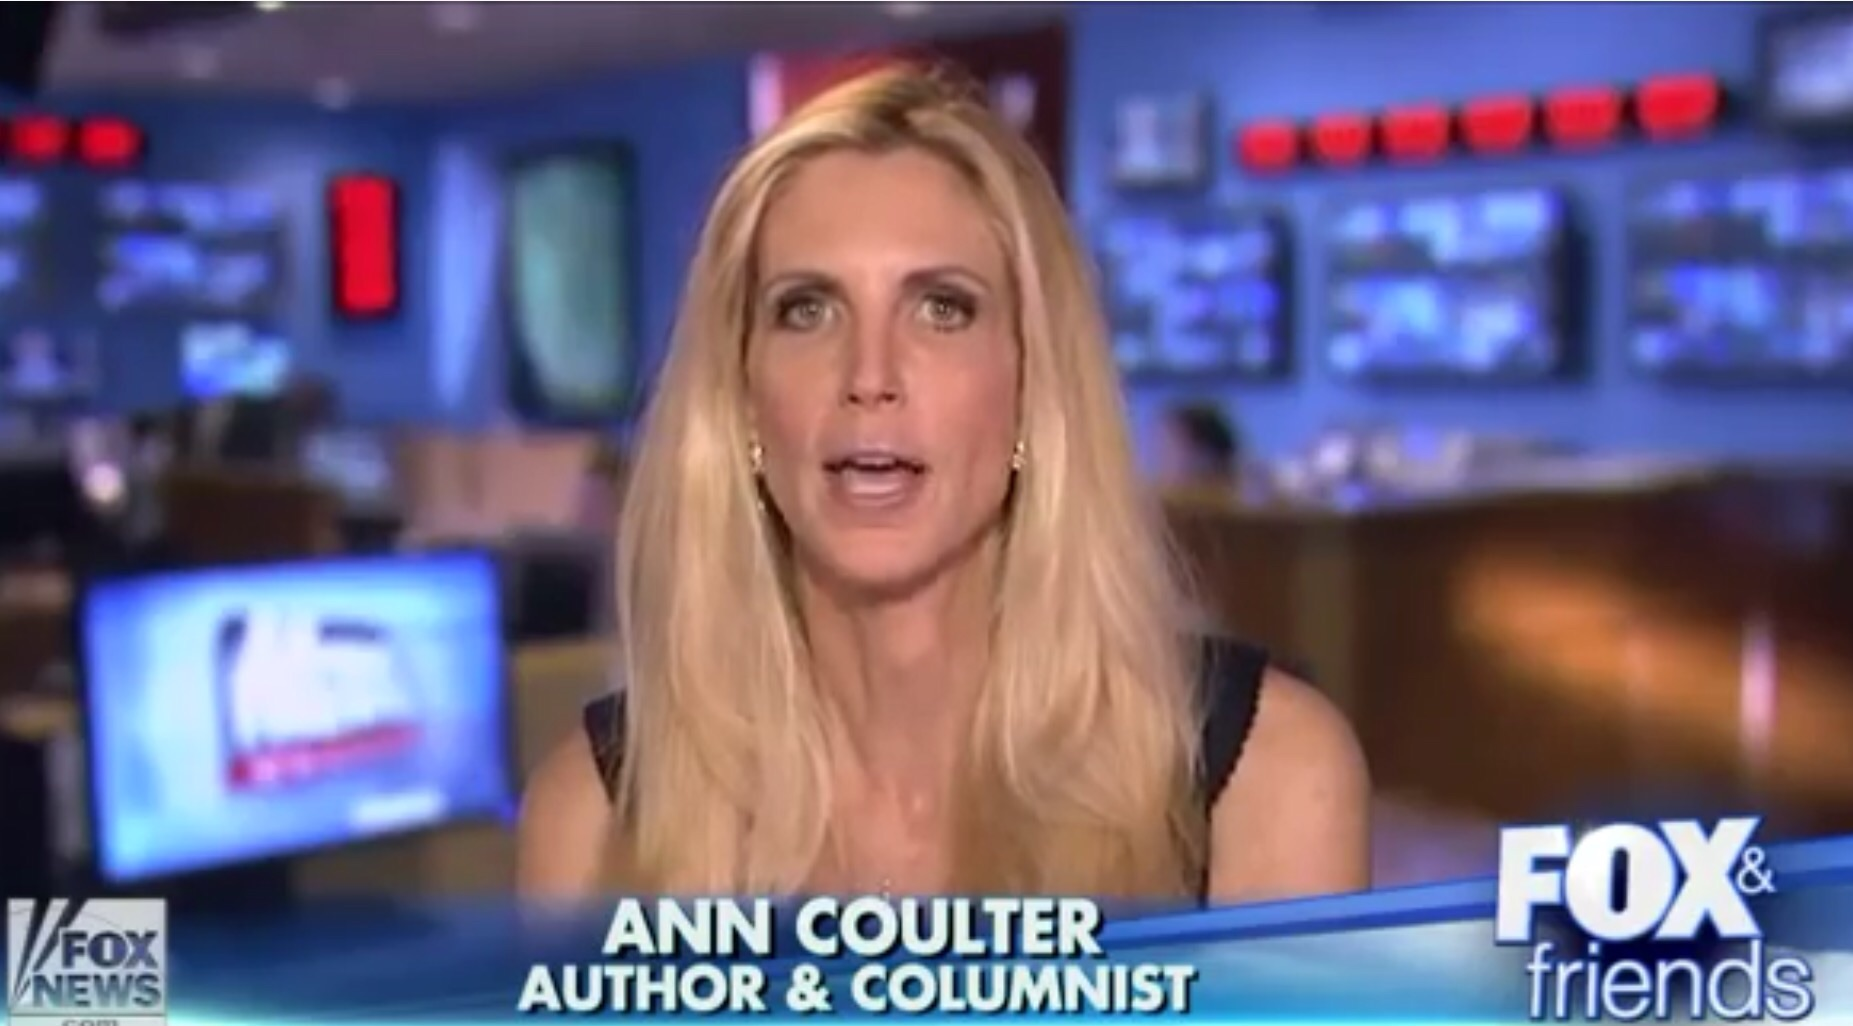 Hacked: Ann Coulter Nude